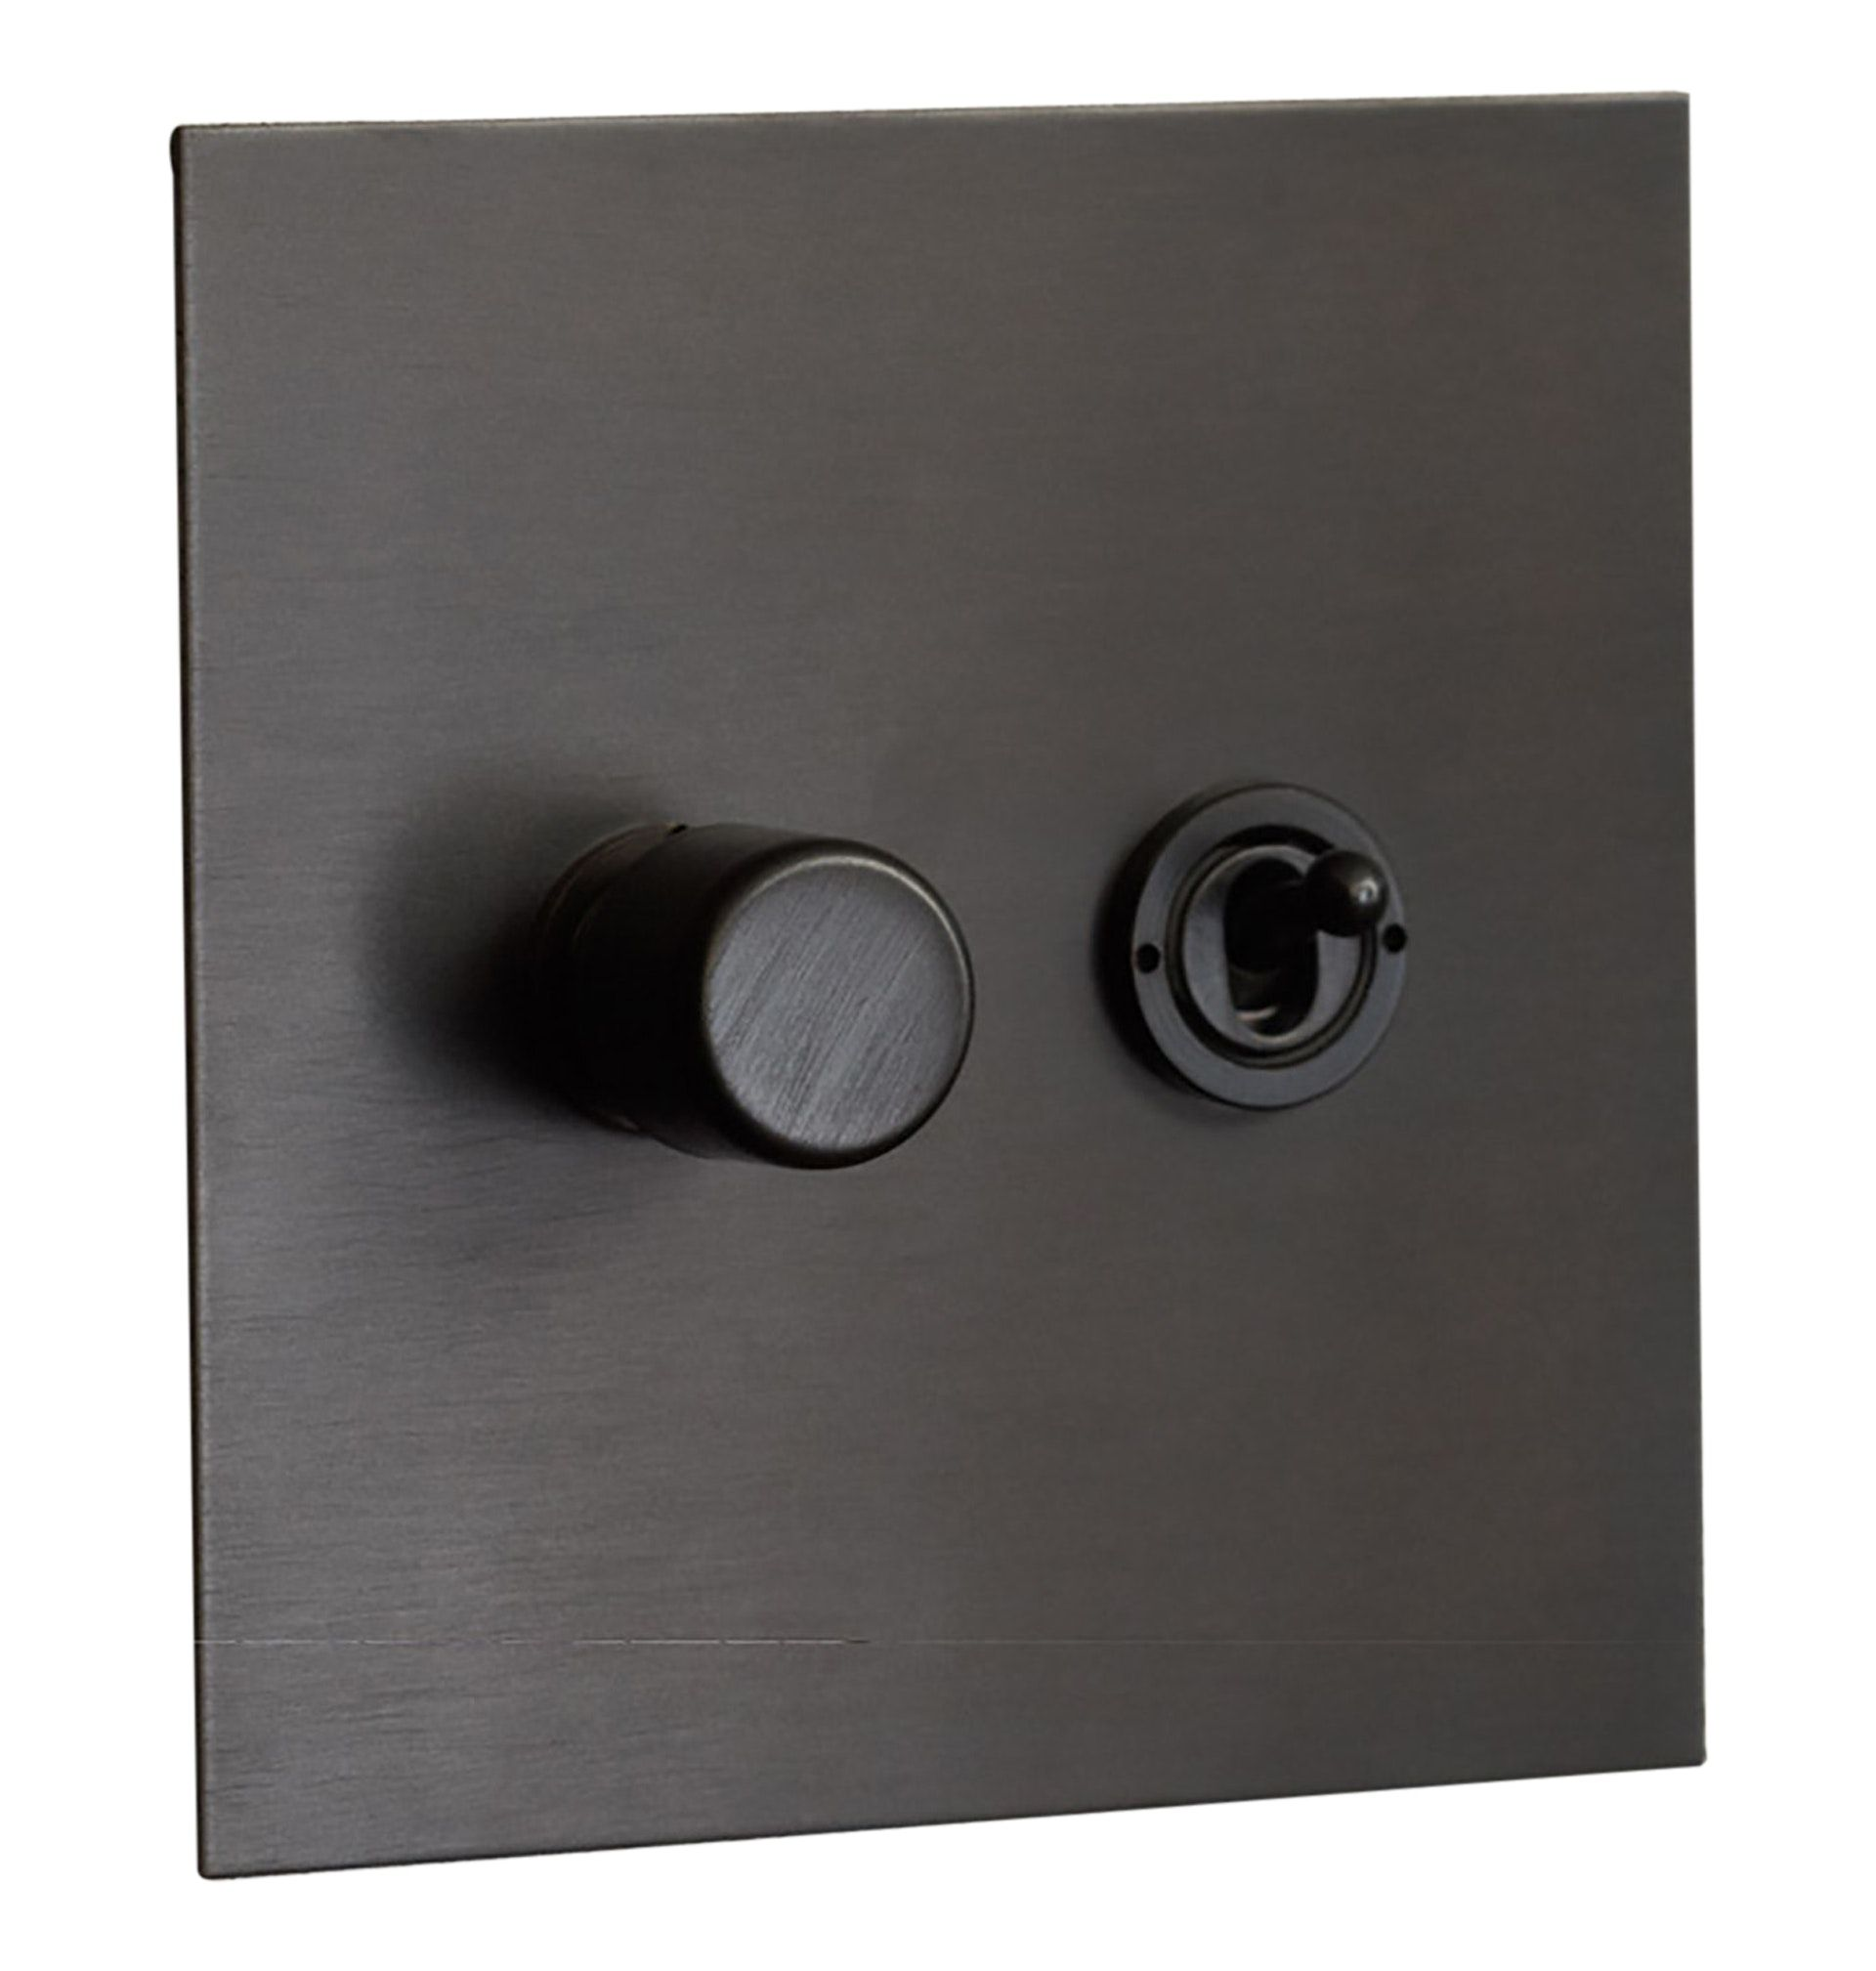 Antique Bronze Light Switches With Images Modern Light